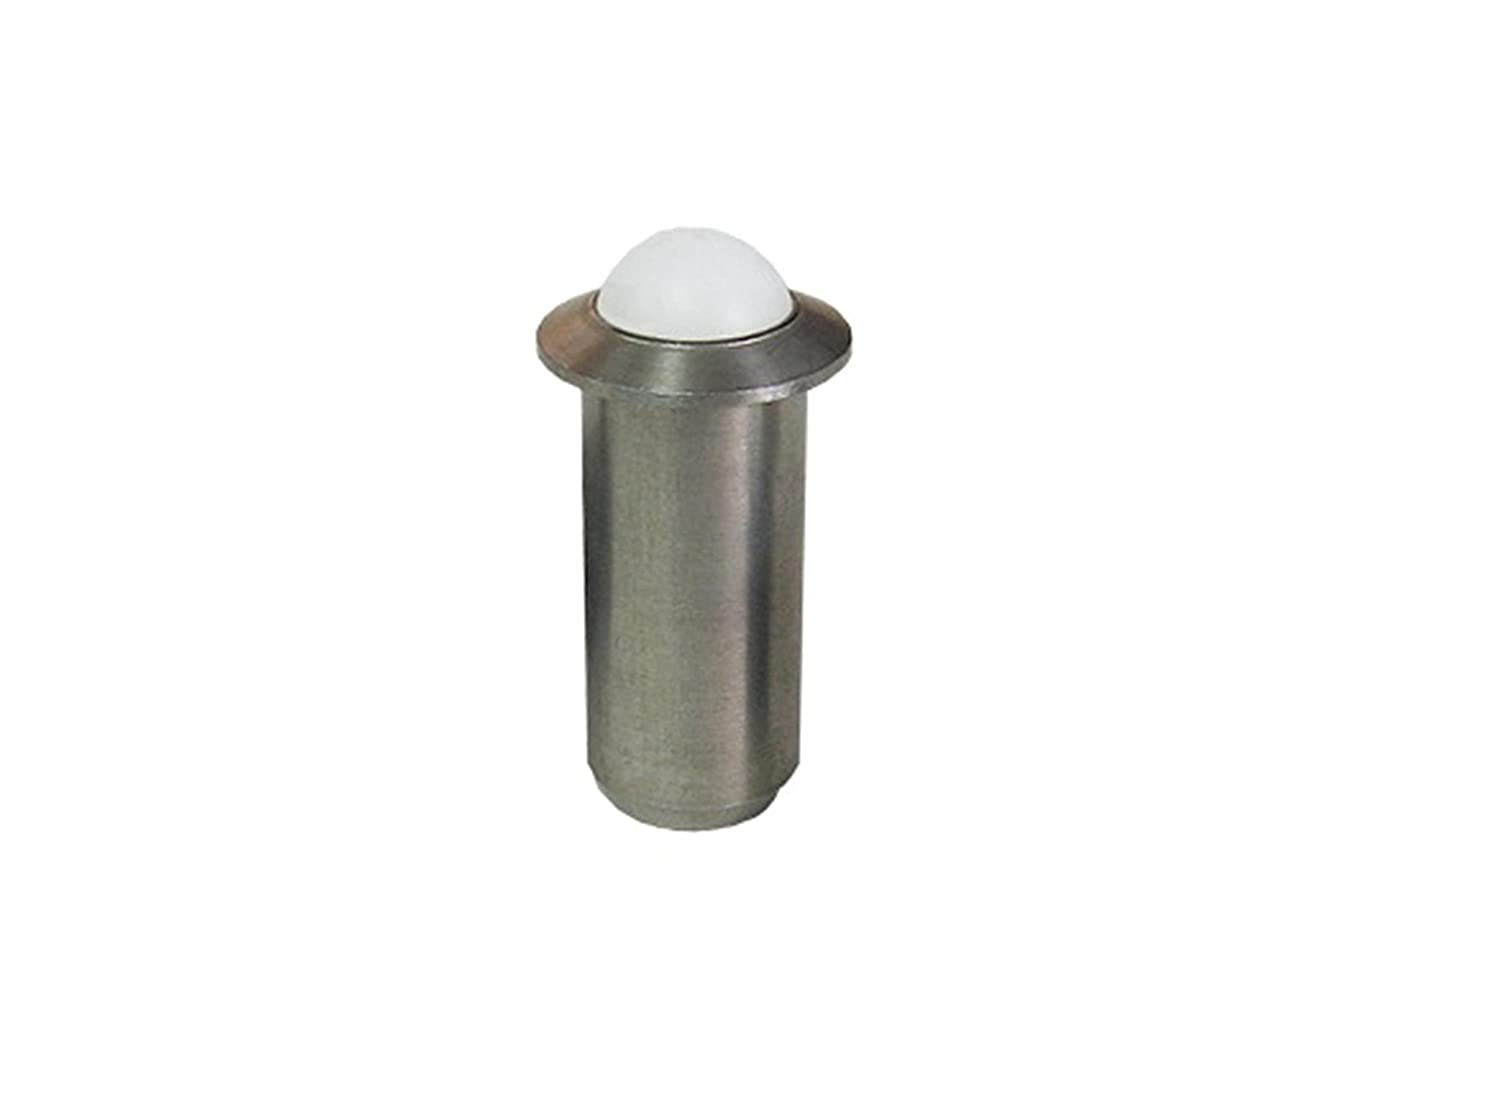 Inc. Ball /& Spring Plunger SSWPFN10-4B Press Fit Ball Nose Plunger Standard End Force with Nylon Ball S/&W Manufacturing Co